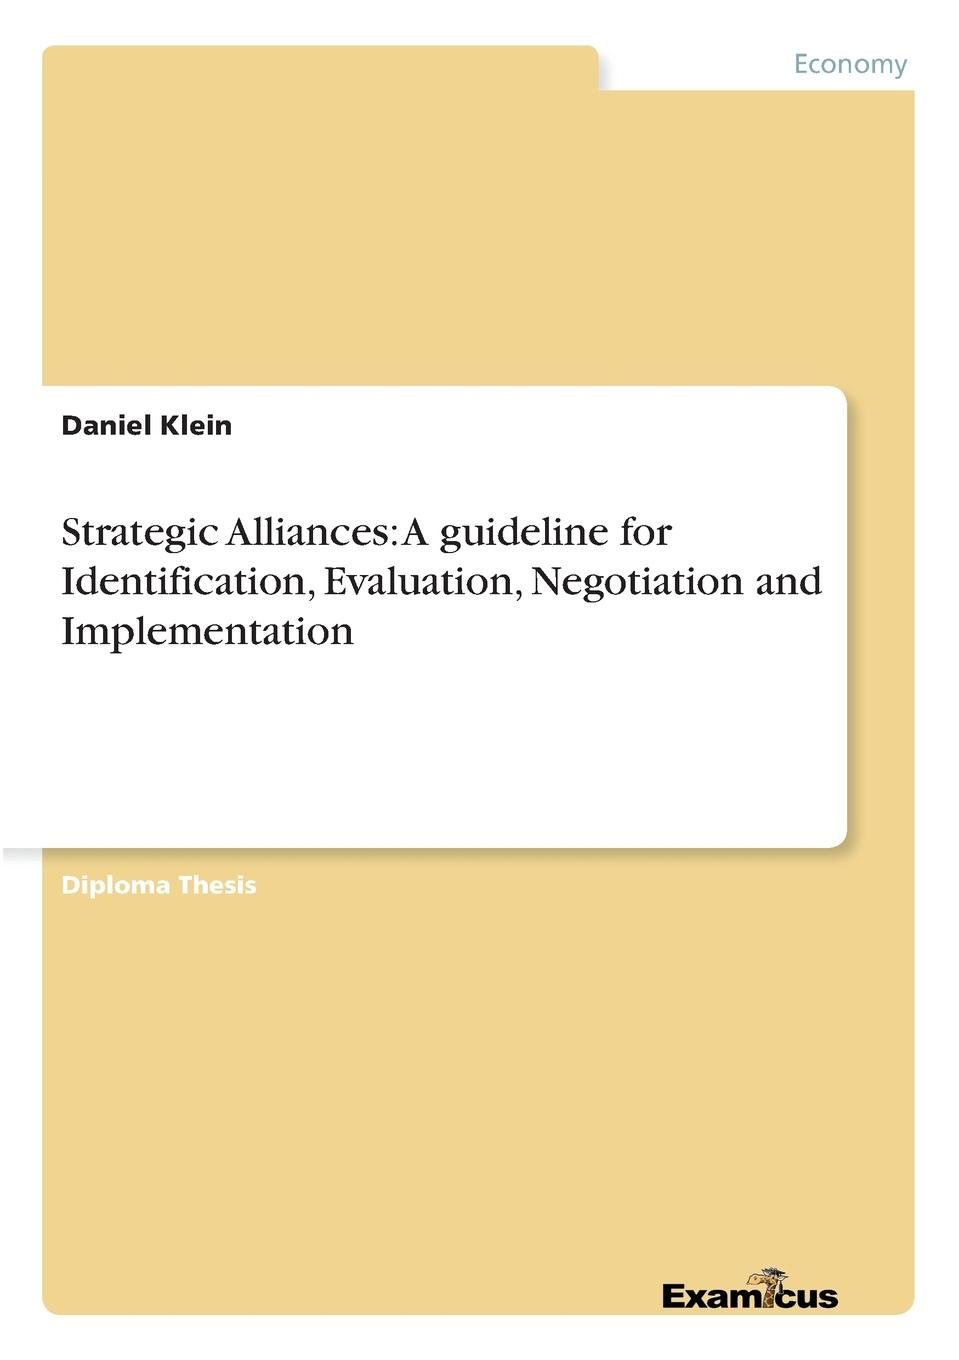 Daniel Klein Strategic Alliances. A guideline for Identification, Evaluation, Negotiation and Implementation james lukaszewski e why should the boss listen to you the seven disciplines of the trusted strategic advisor